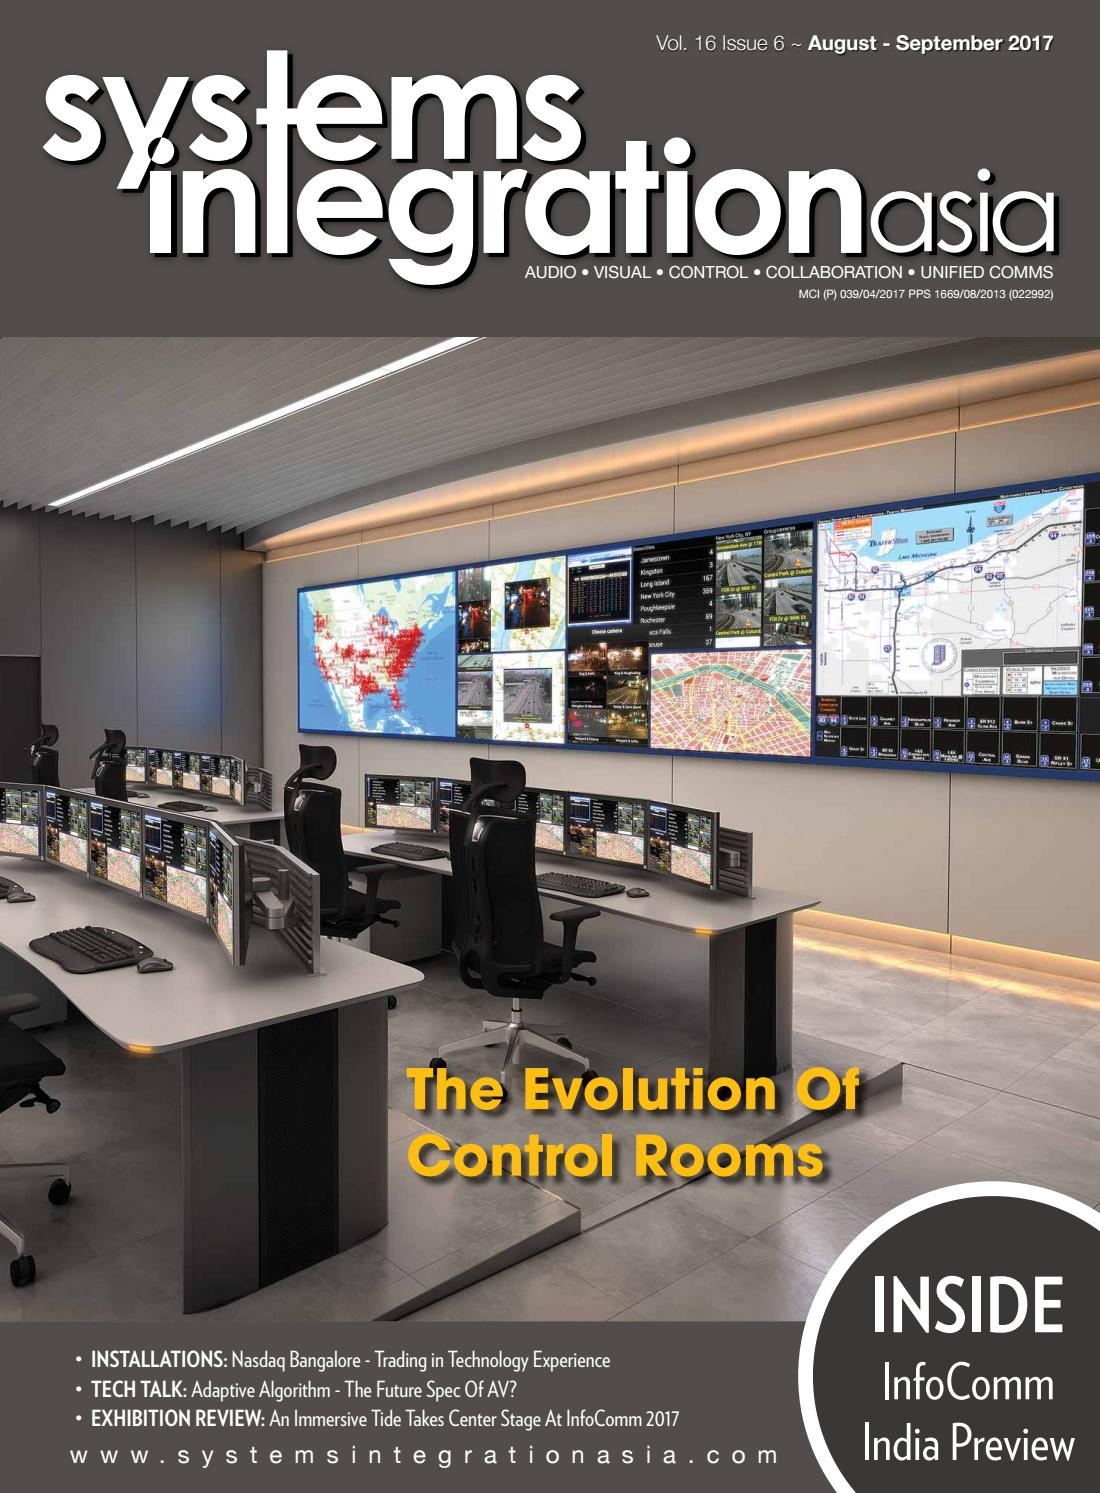 Av asia pacific magazine the new samsung smart signage platform av - Av Asia Pacific Magazine The New Samsung Smart Signage Platform Av 29